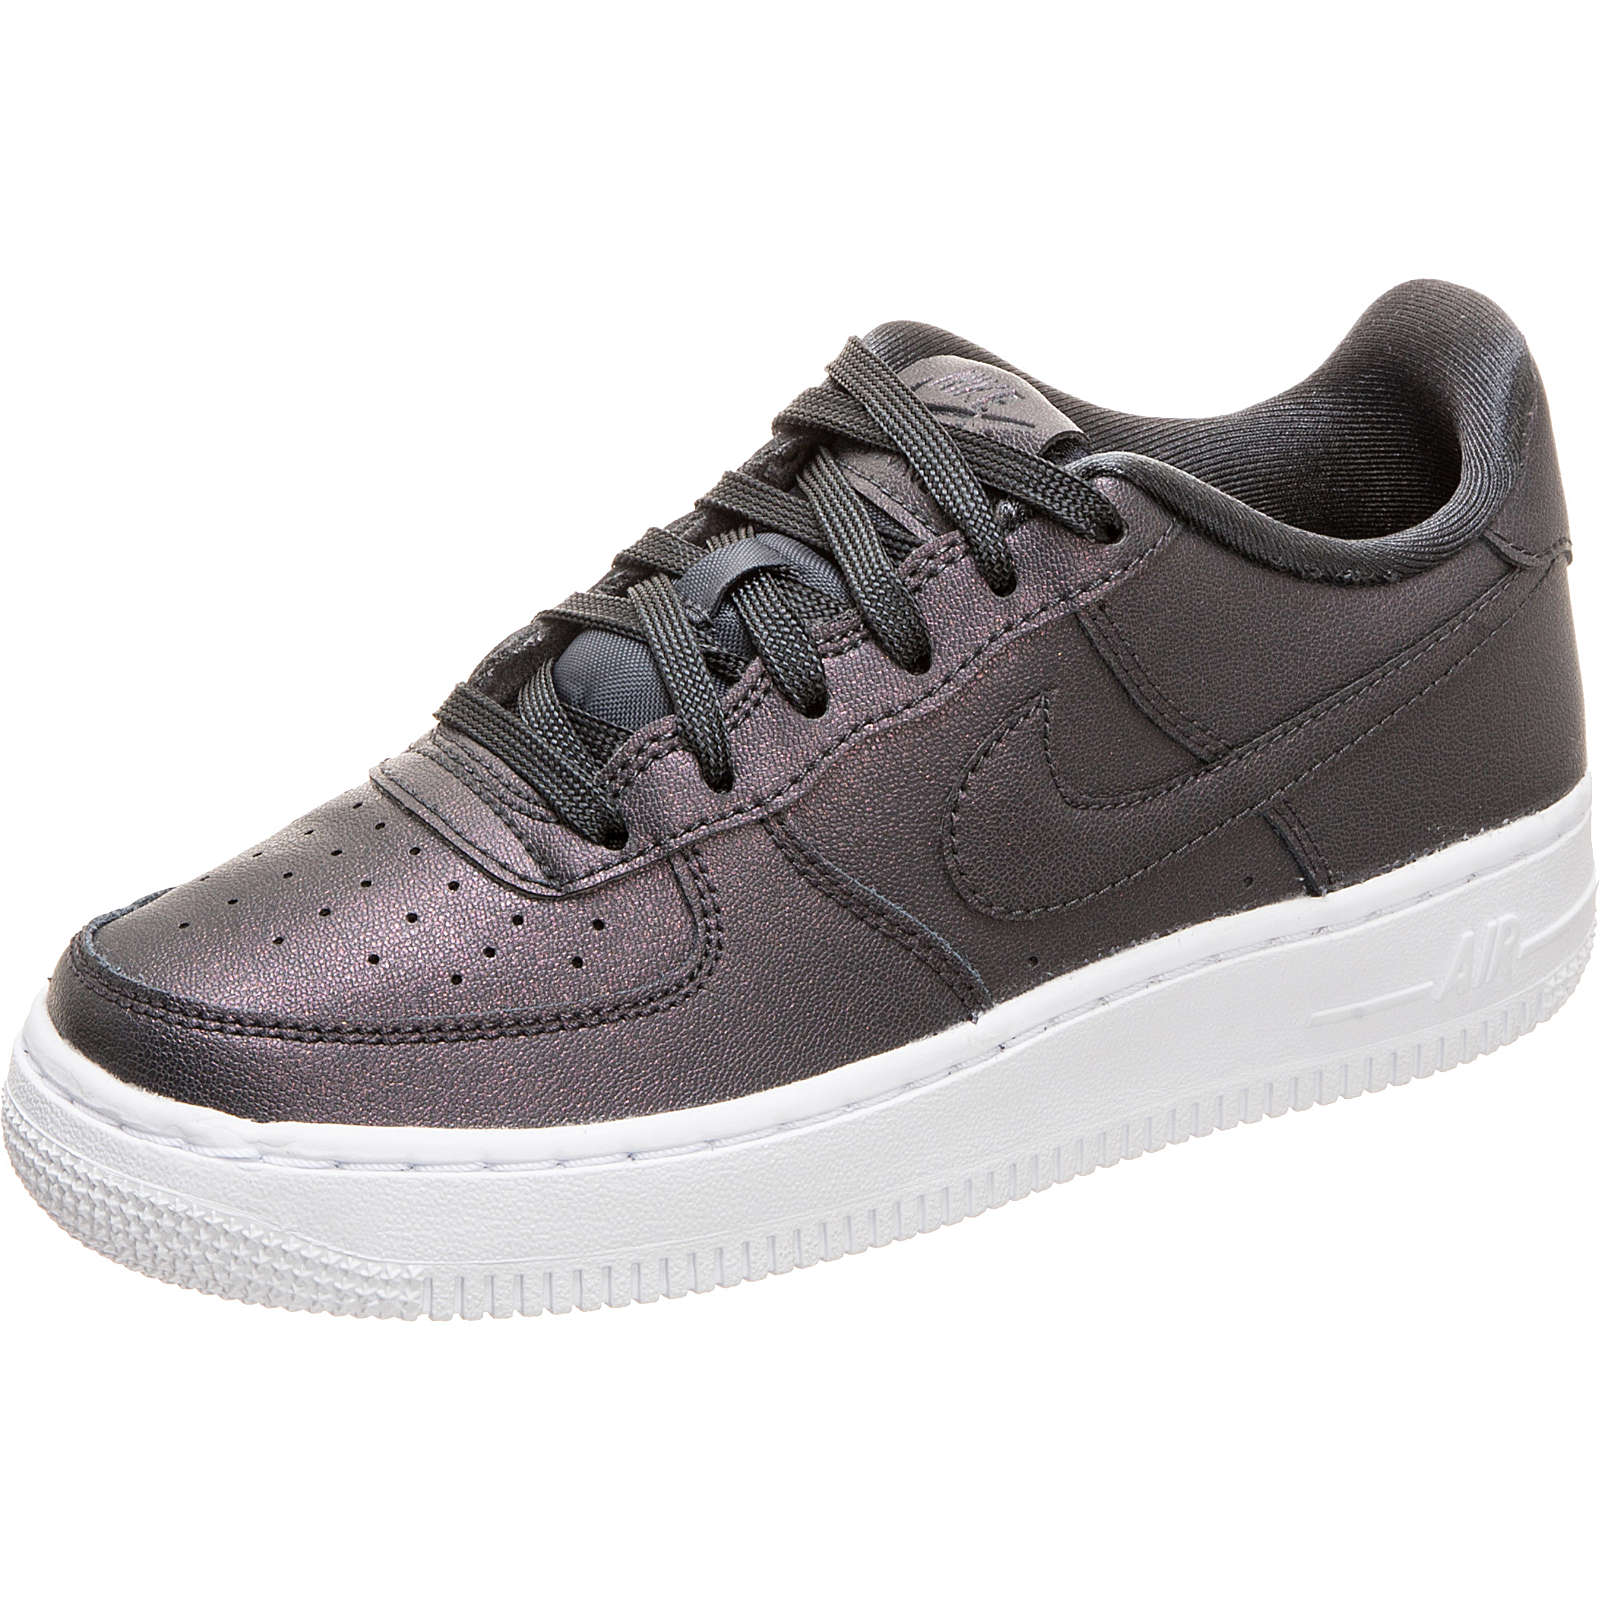 Nike Sportswear Air Force 1 SS Sneaker Kinder anthrazit Gr. 35,5